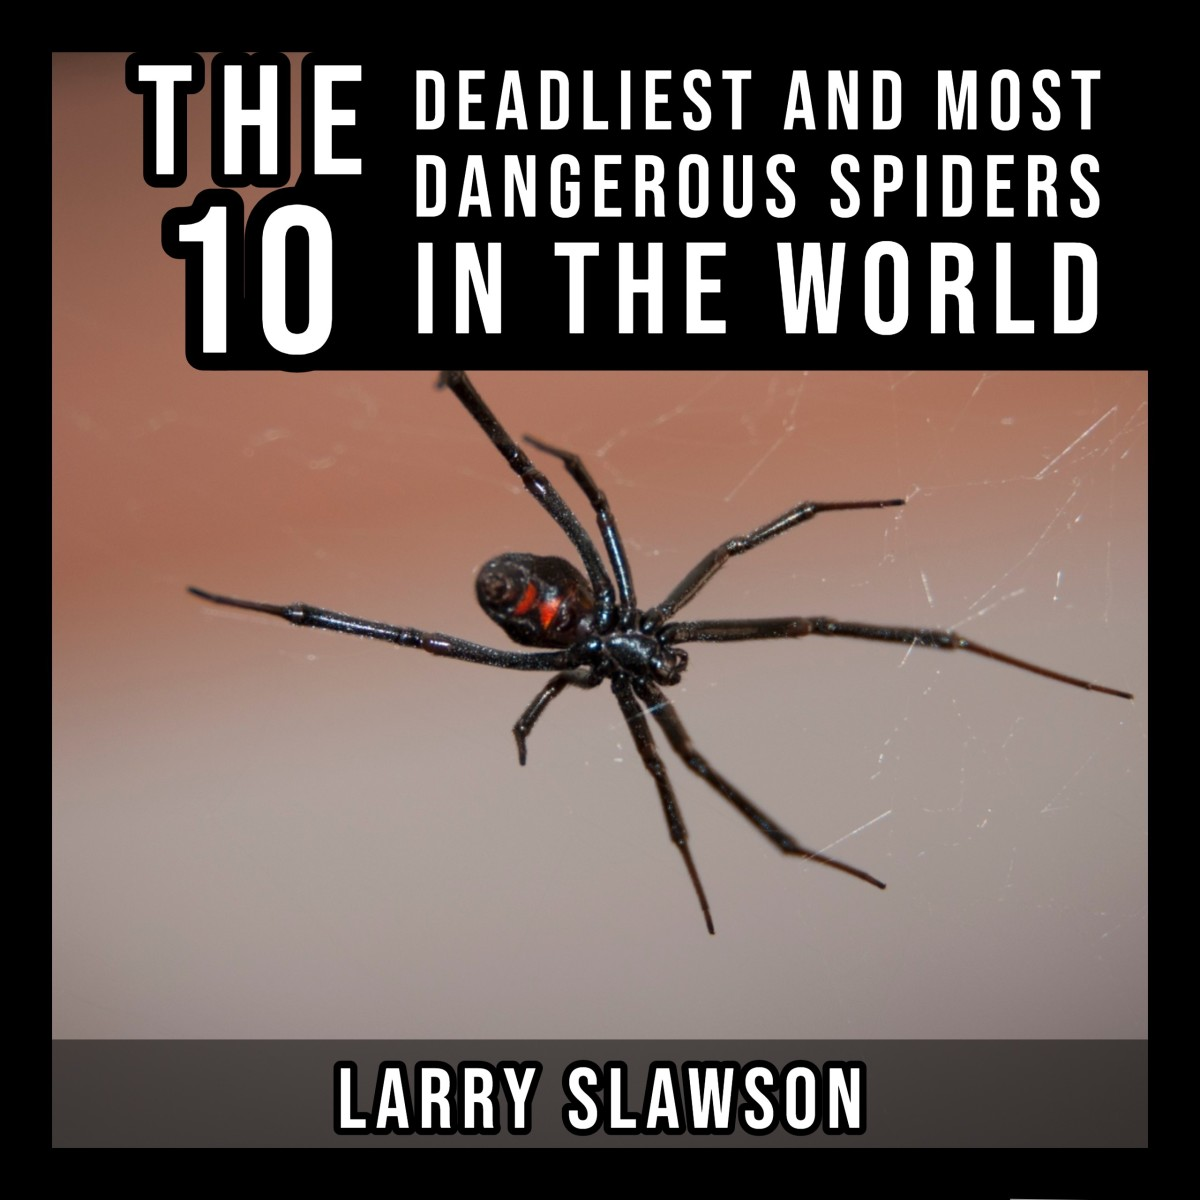 The 10 Deadliest and Most Dangerous Spiders in the World